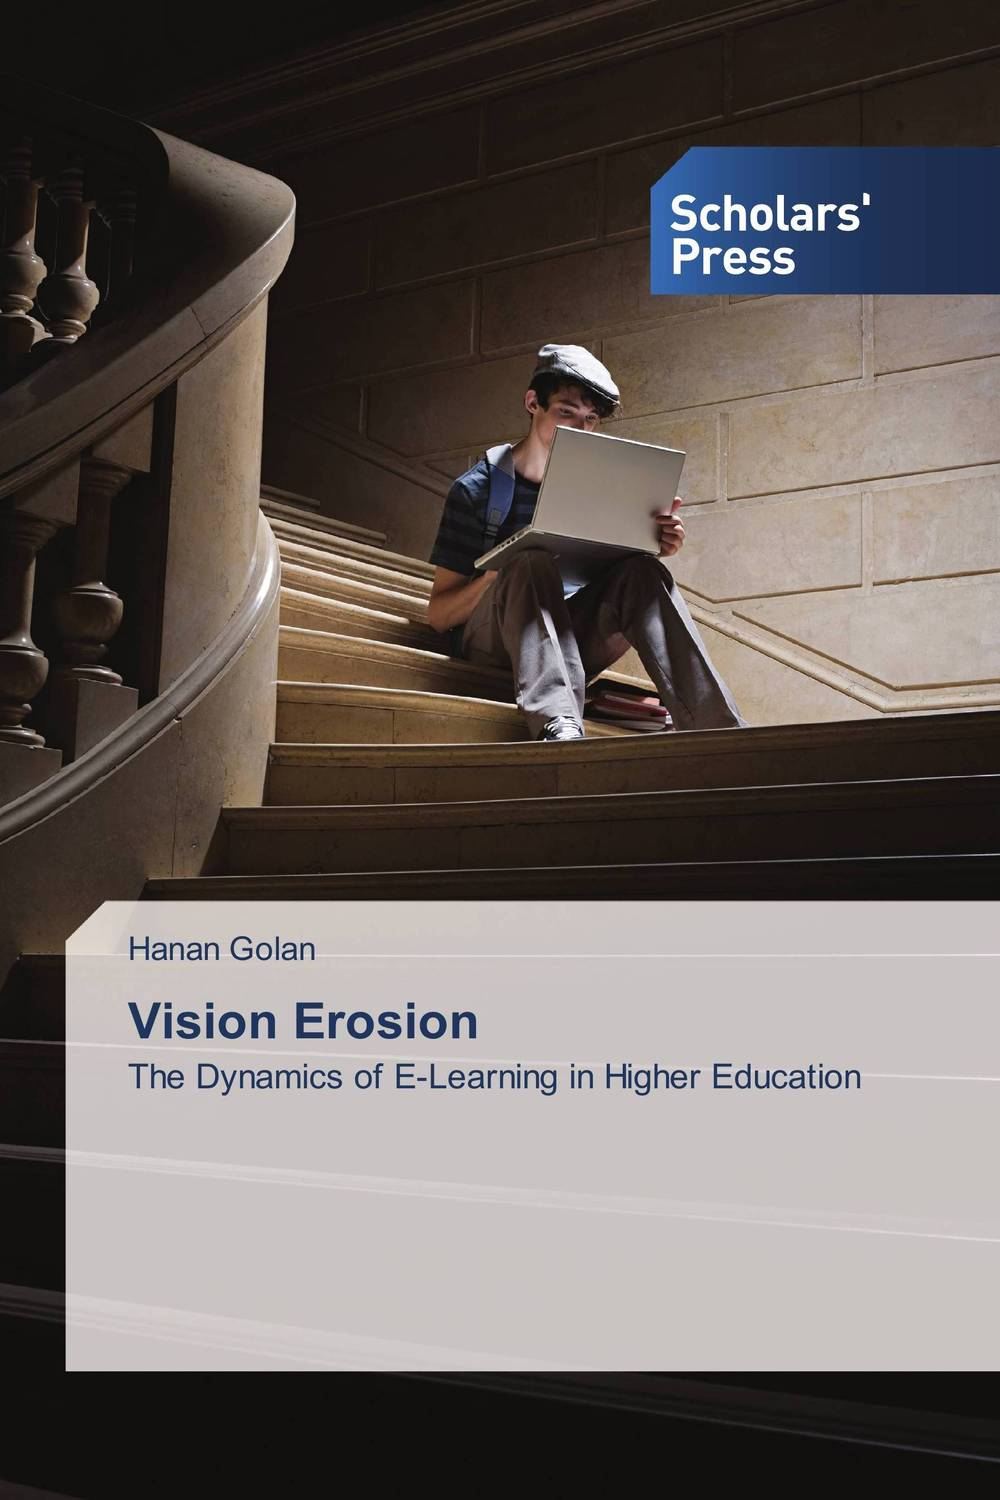 Vision Erosion strategy for successful e learning implementation in higher education